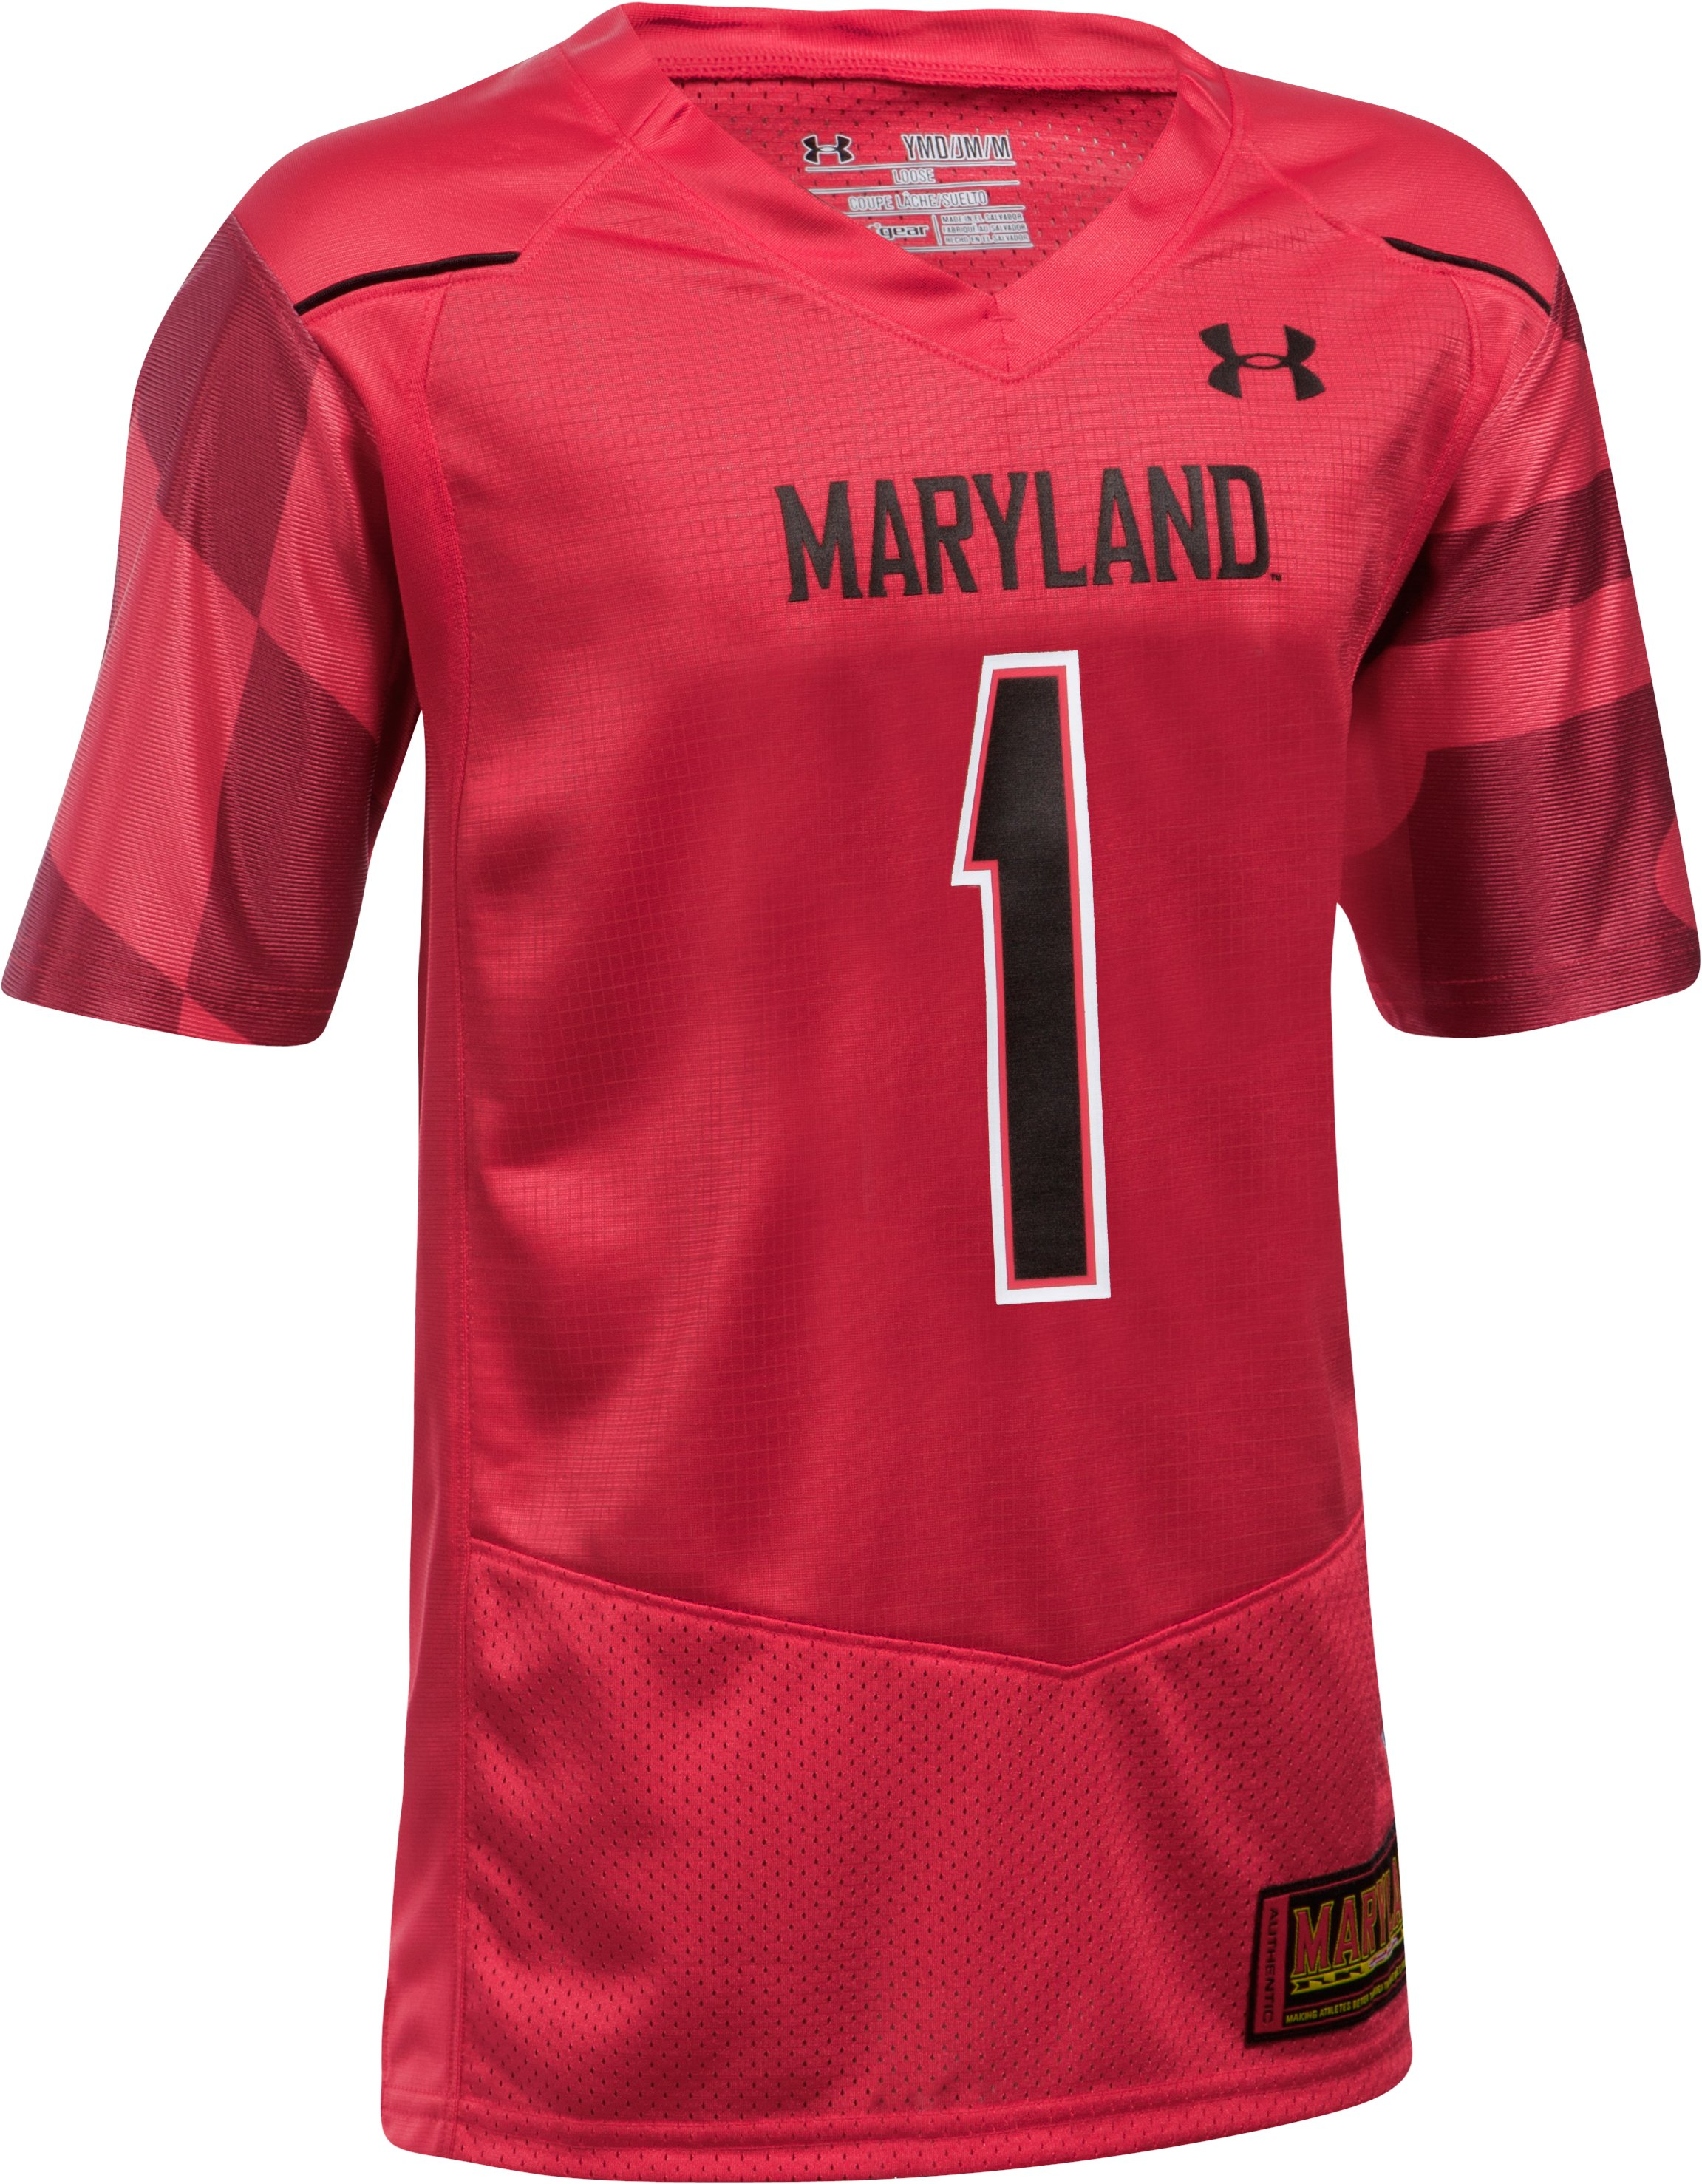 Kids' Maryland Replica Jersey, Red